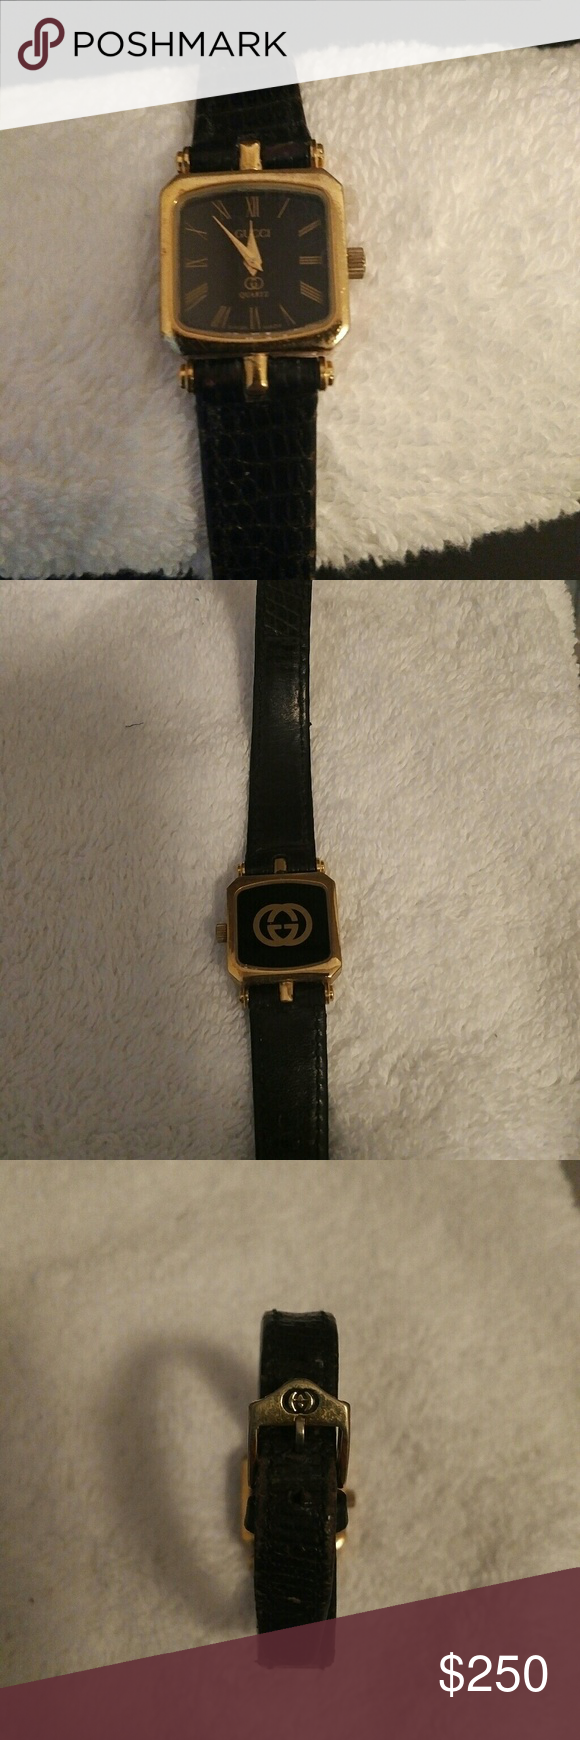 68d3b53acaa GUCCI VINTAGE WOMENS WATCH 10k gold plated womens watch small square black  dial with stripe edge - black leather original Gucci band so it s worn